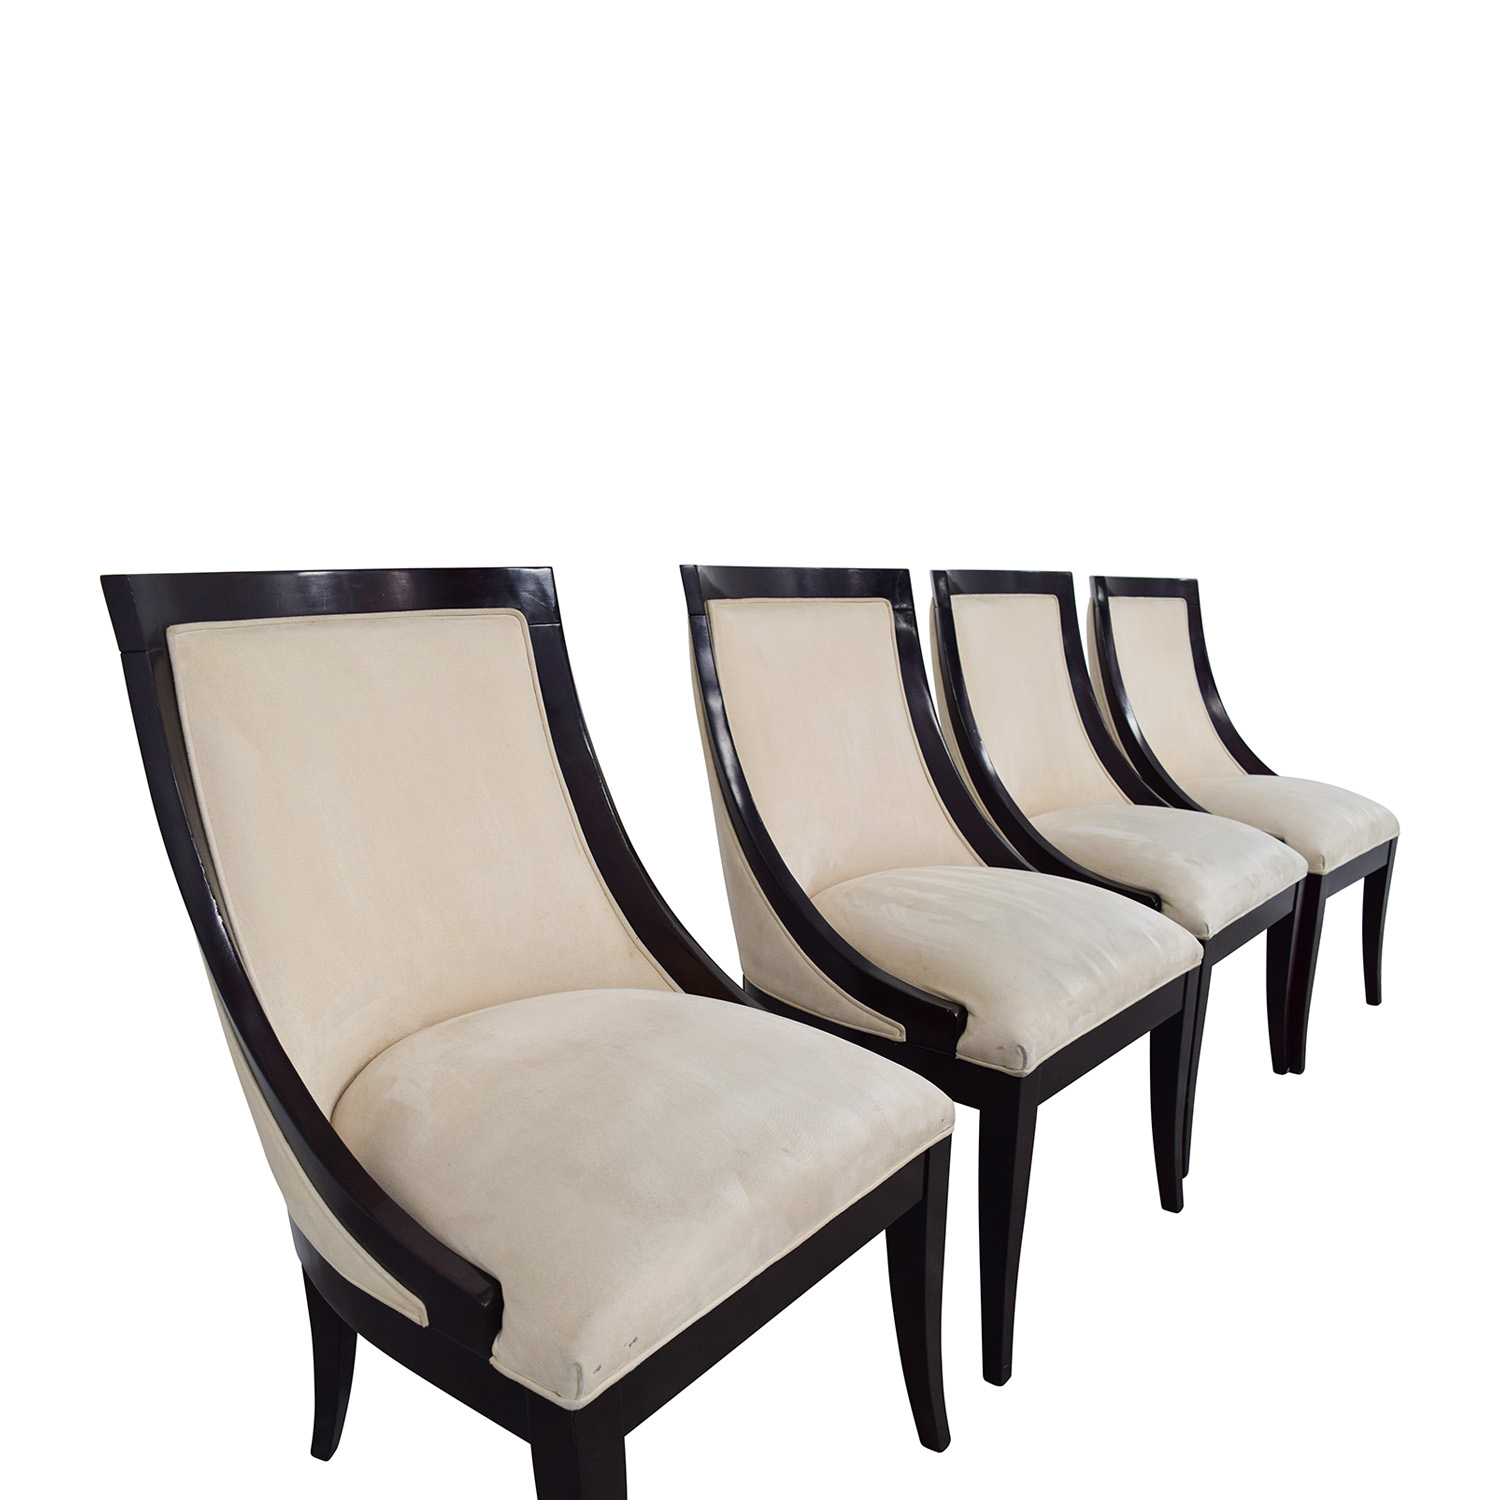 Restoration Hardware Cream Upholstered Dining Chairs sale